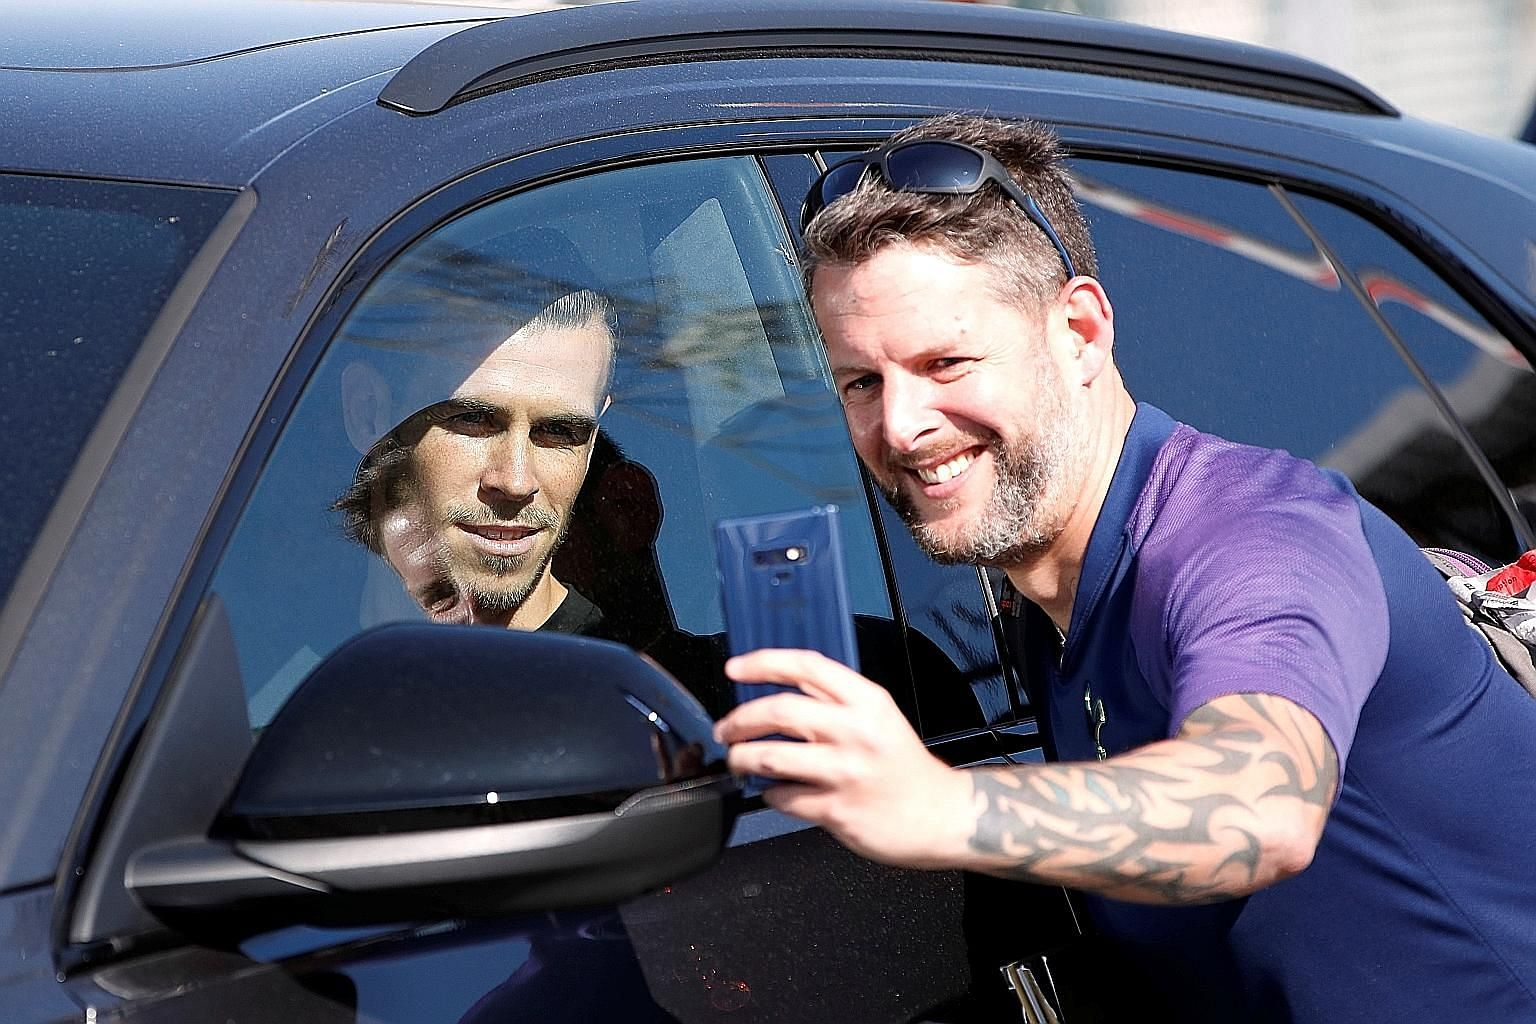 Gareth Bale posing for a wefie with a fan as he leaves Luton Airport yesterday. The Wales forward was expected to join his former club, Tottenham Hotspur, initially on loan. He had left Spurs for Real Madrid in 2013.